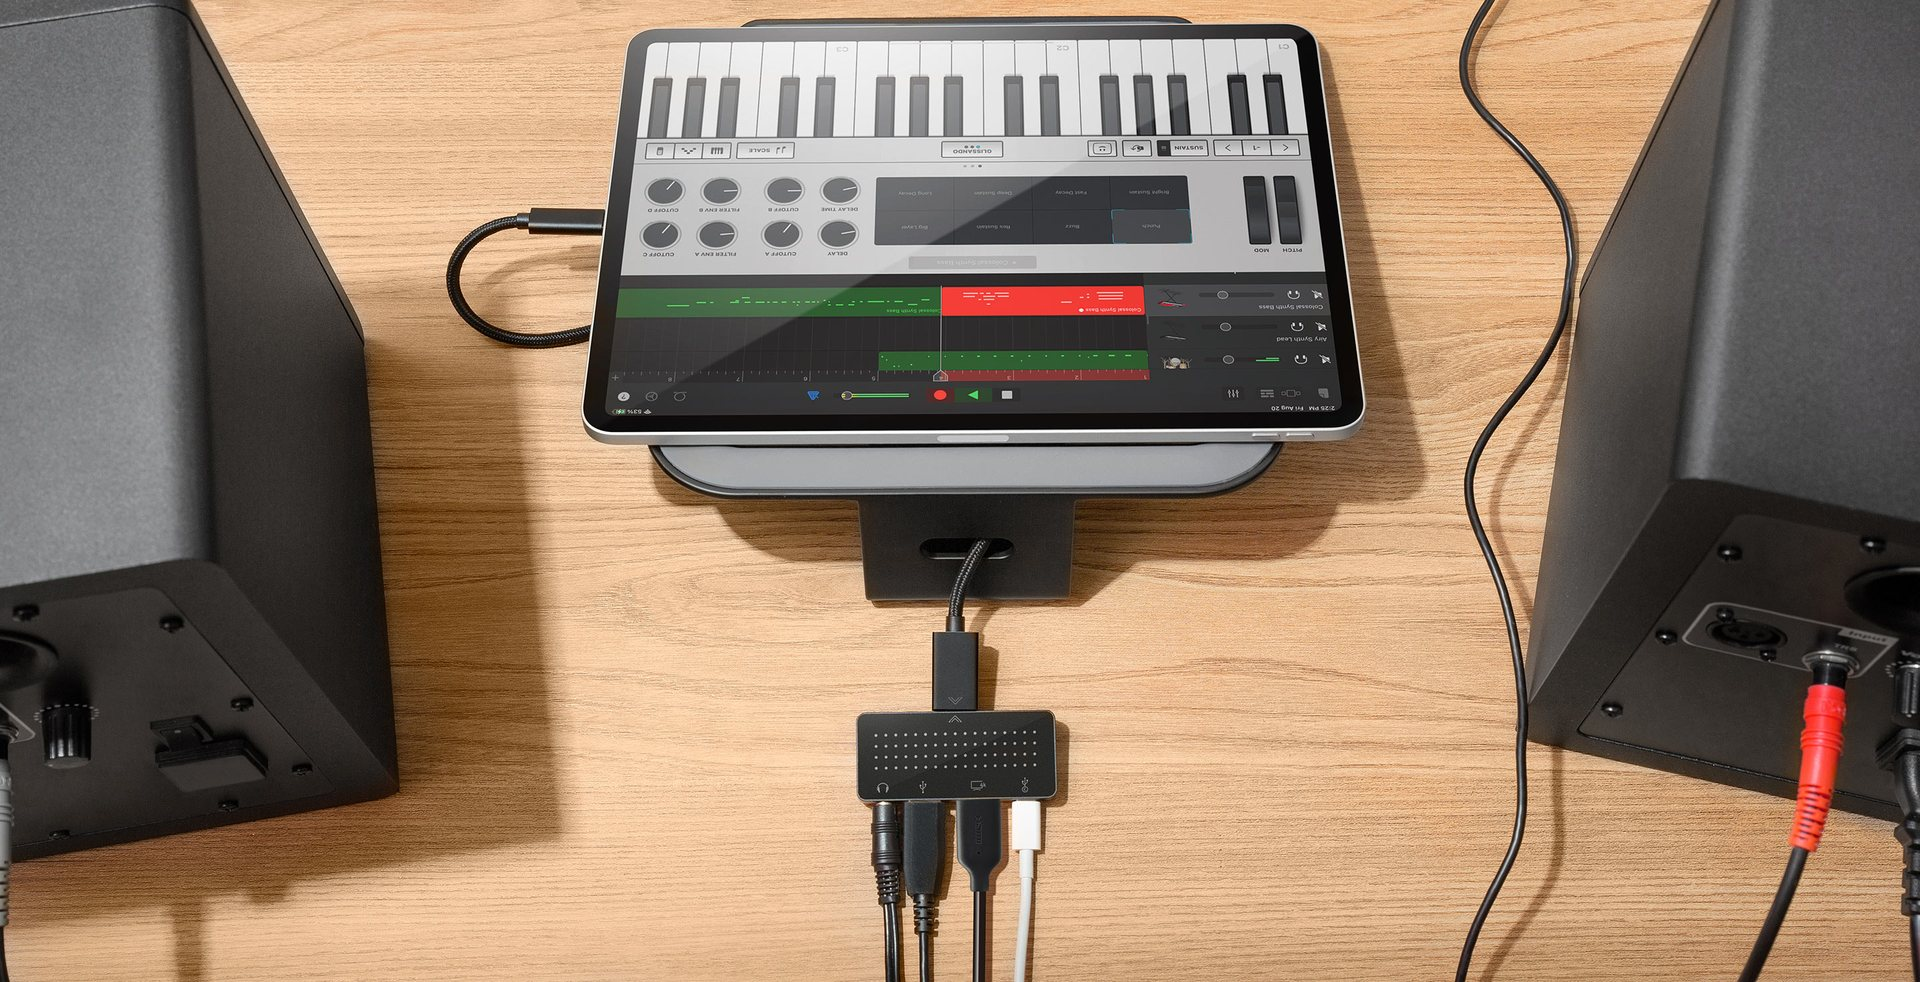 A promotional image from Twelve South showing its StayGo Mini USB-C hub connected to a MacBook Pro